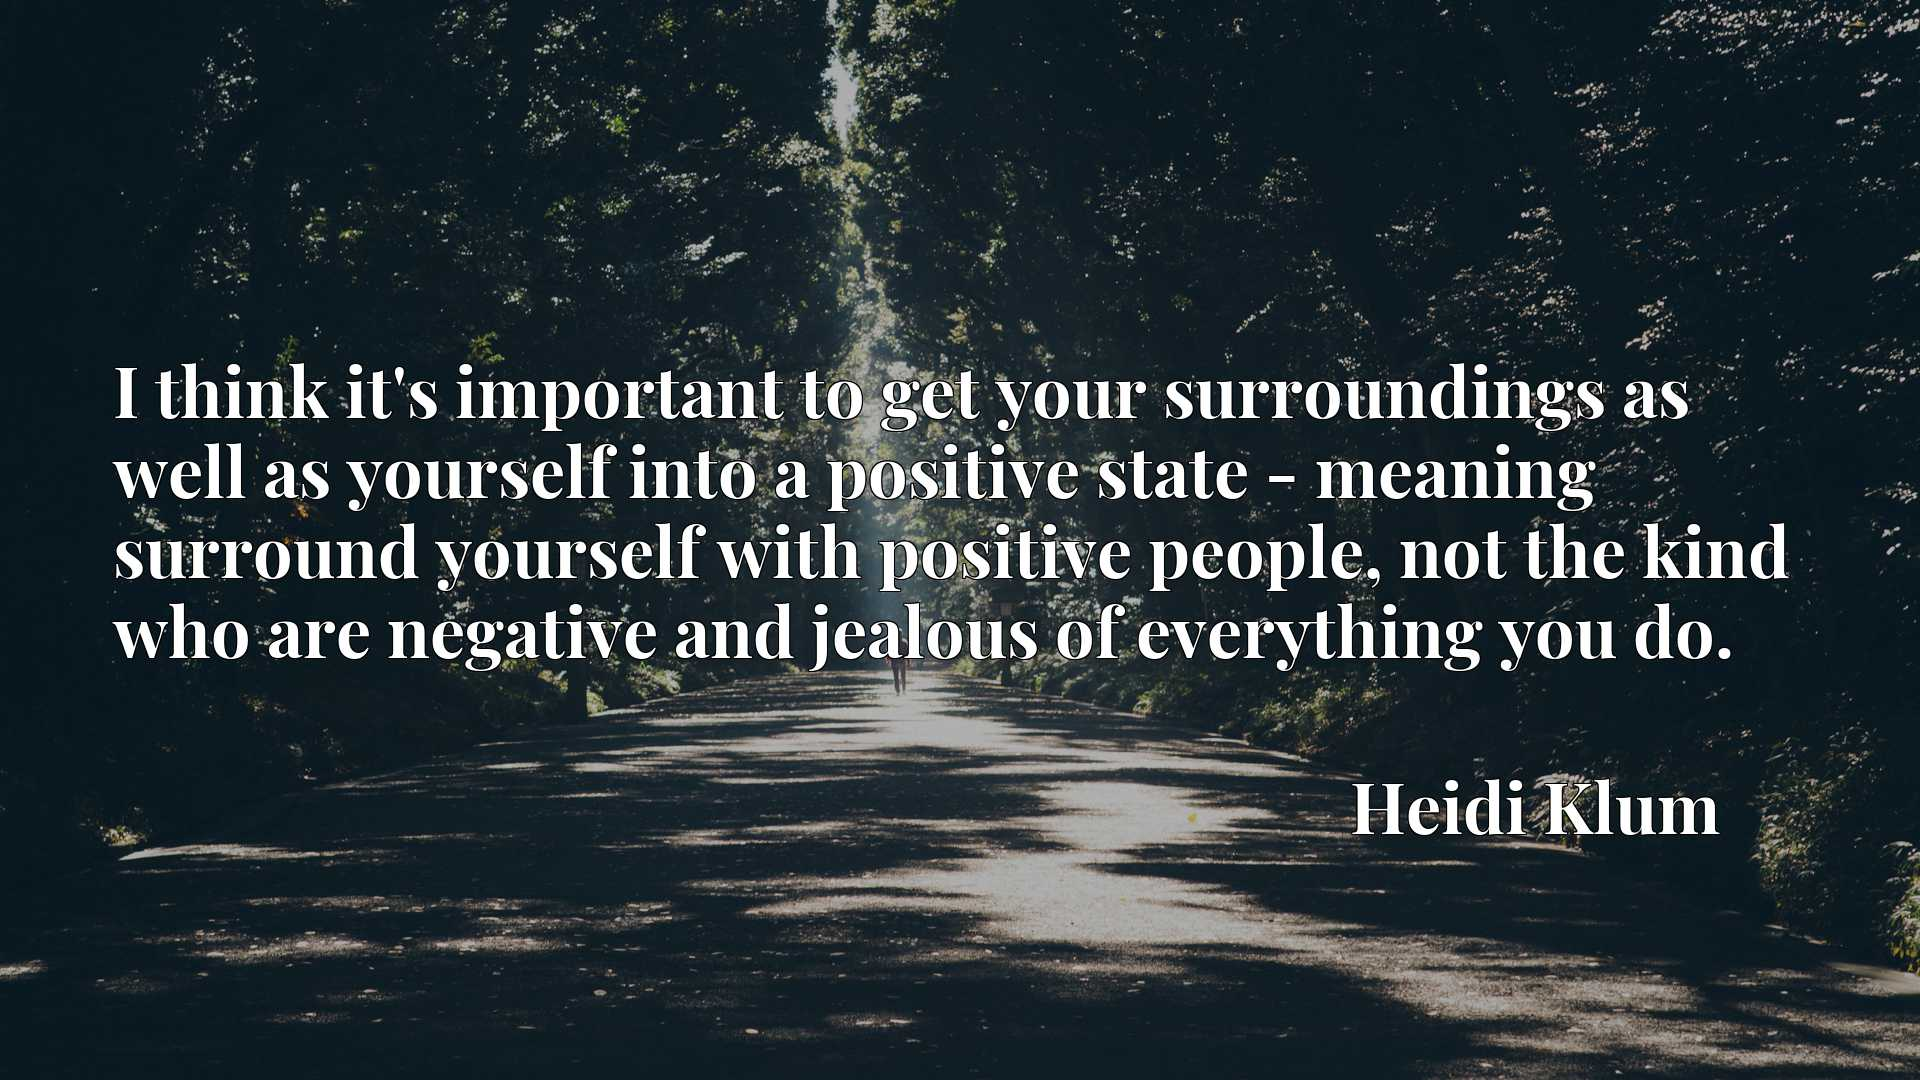 I think it's important to get your surroundings as well as yourself into a positive state - meaning surround yourself with positive people, not the kind who are negative and jealous of everything you do.